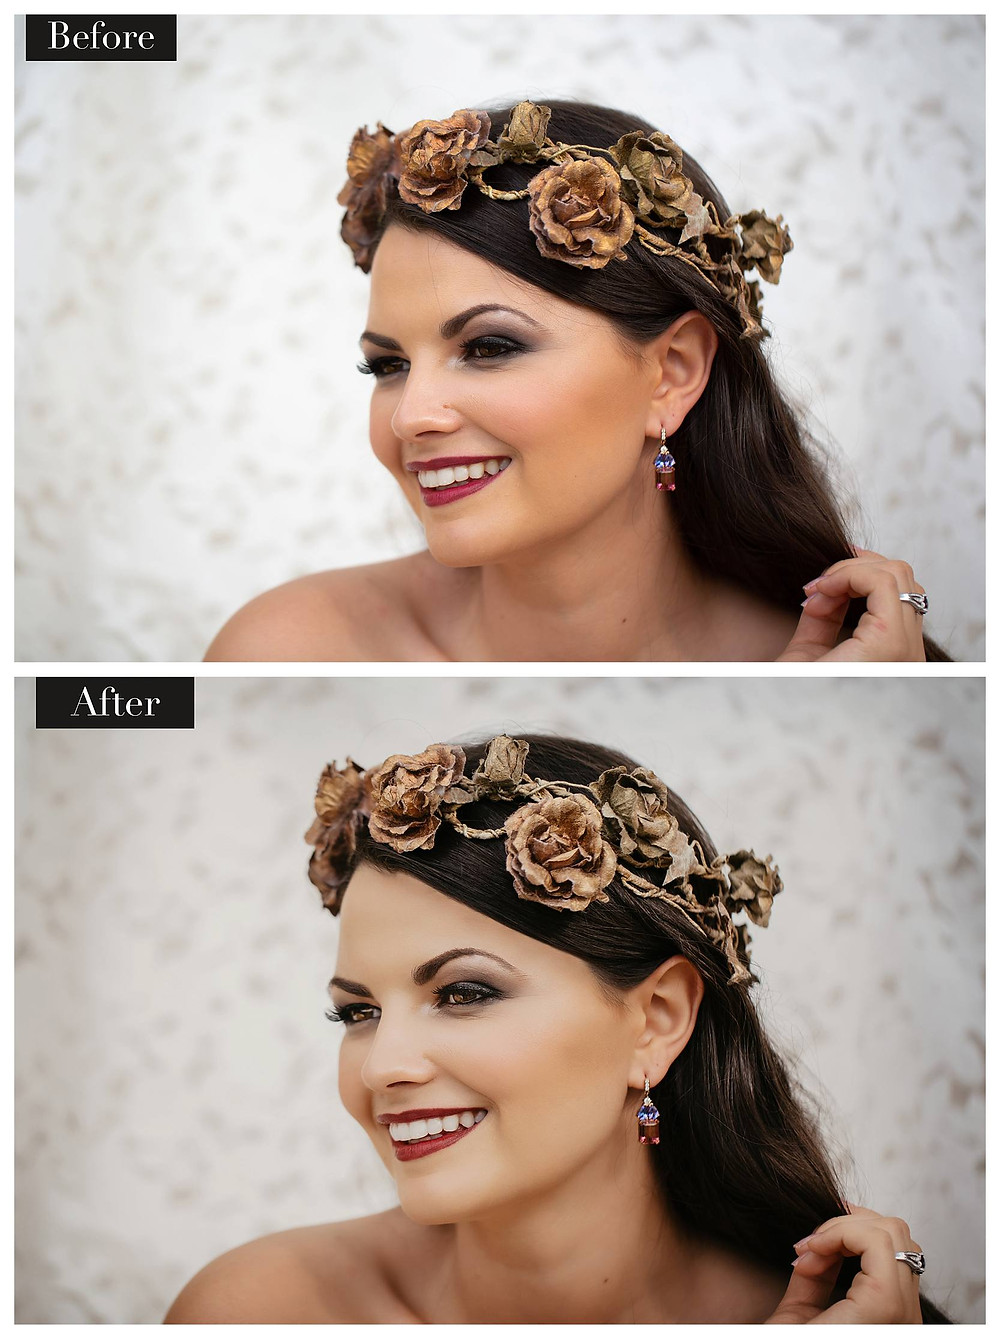 Bride before and after airbrushing